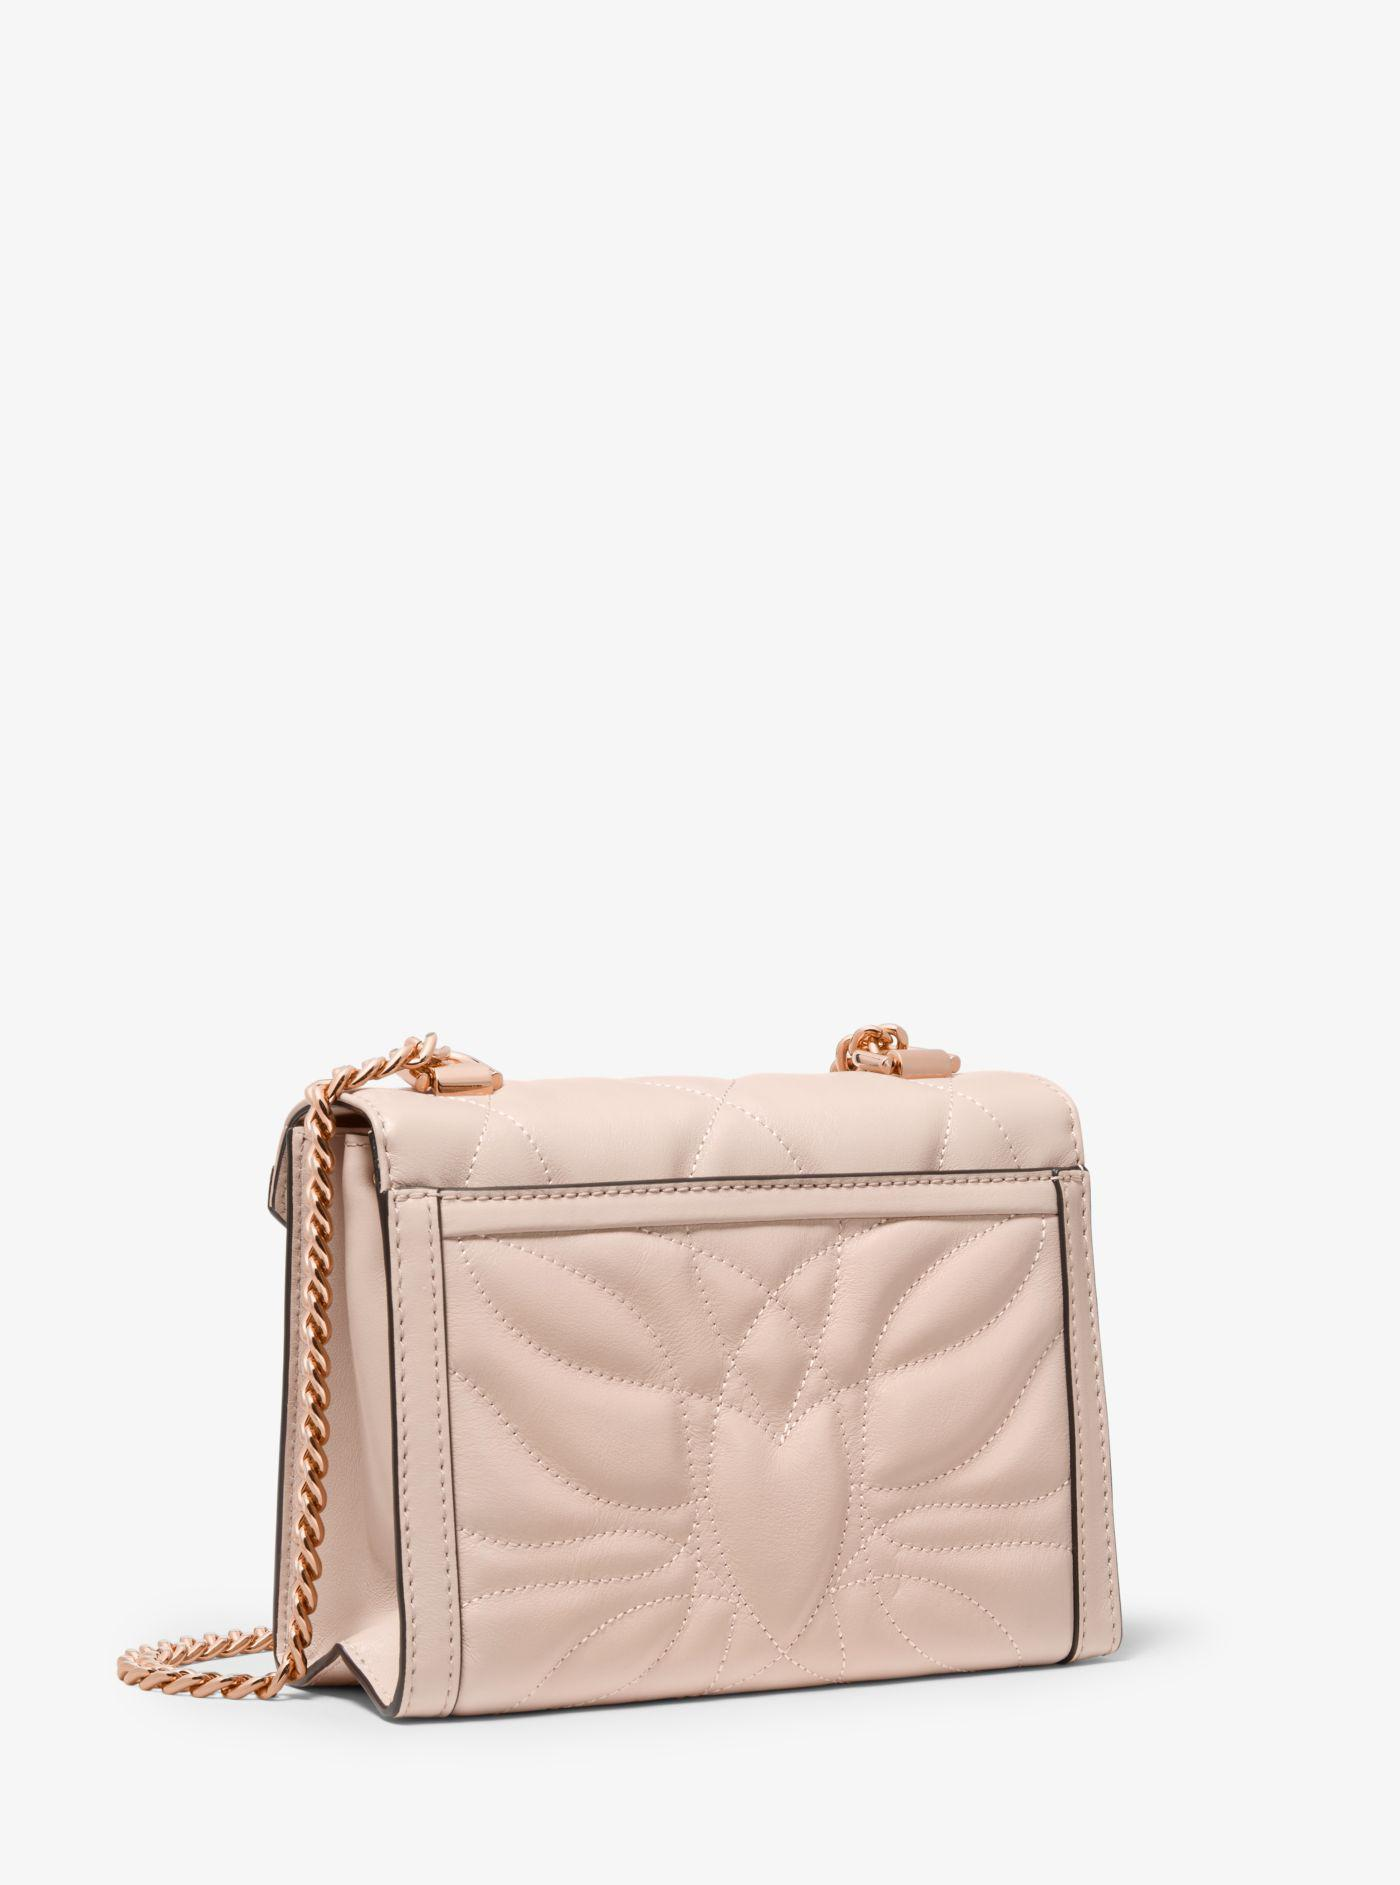 5743c77221aca Lyst - Michael Kors Whitney Small Petal Quilted Leather Convertible ...